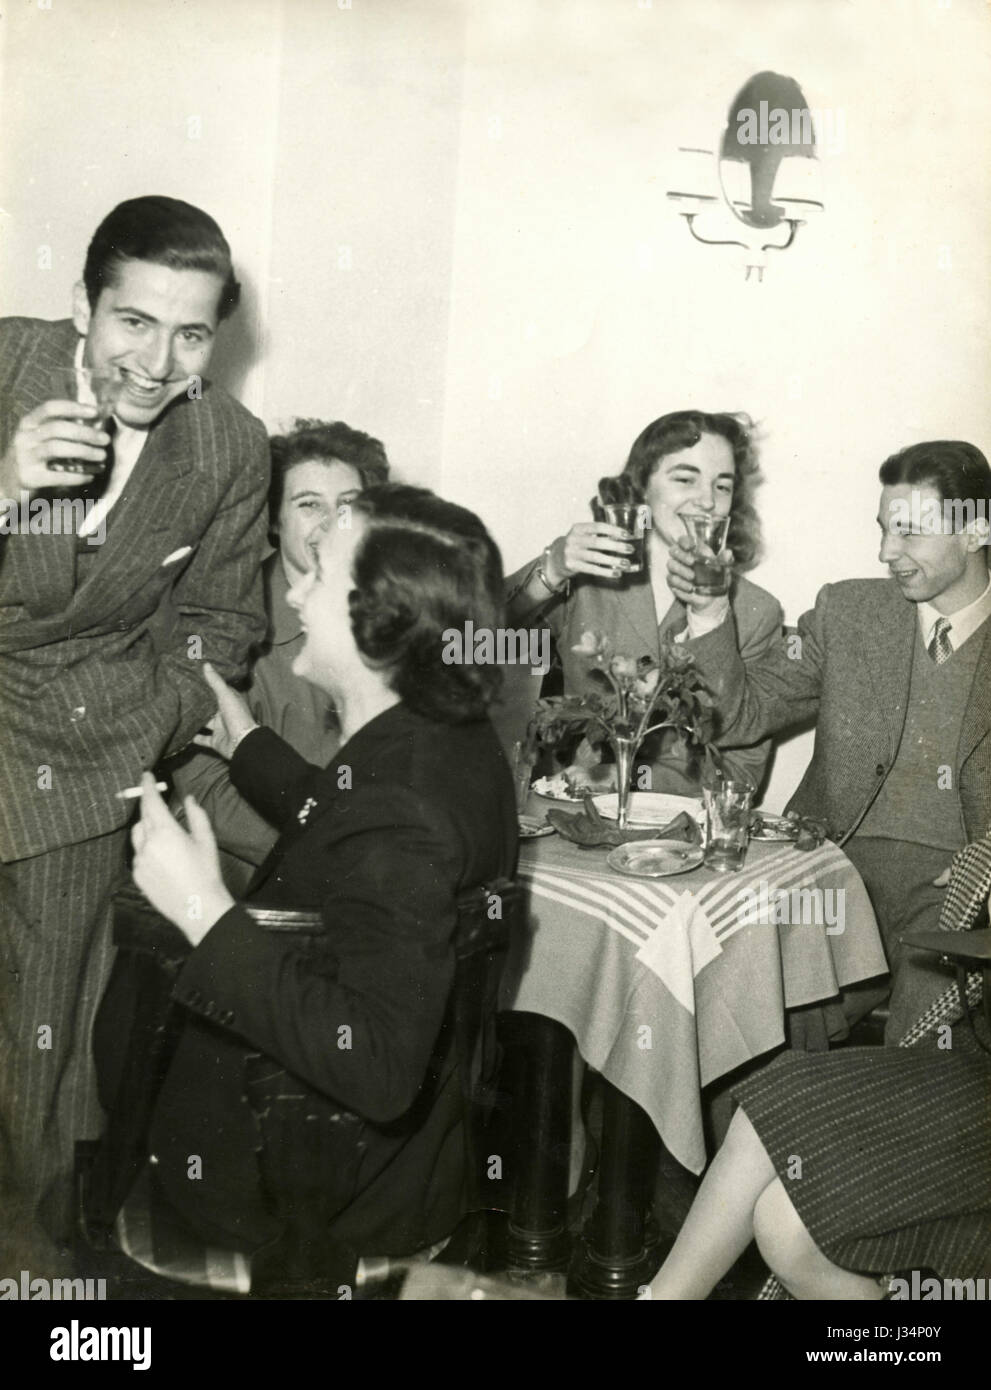 Youngsters at a party, Italy 1954 - Stock Image